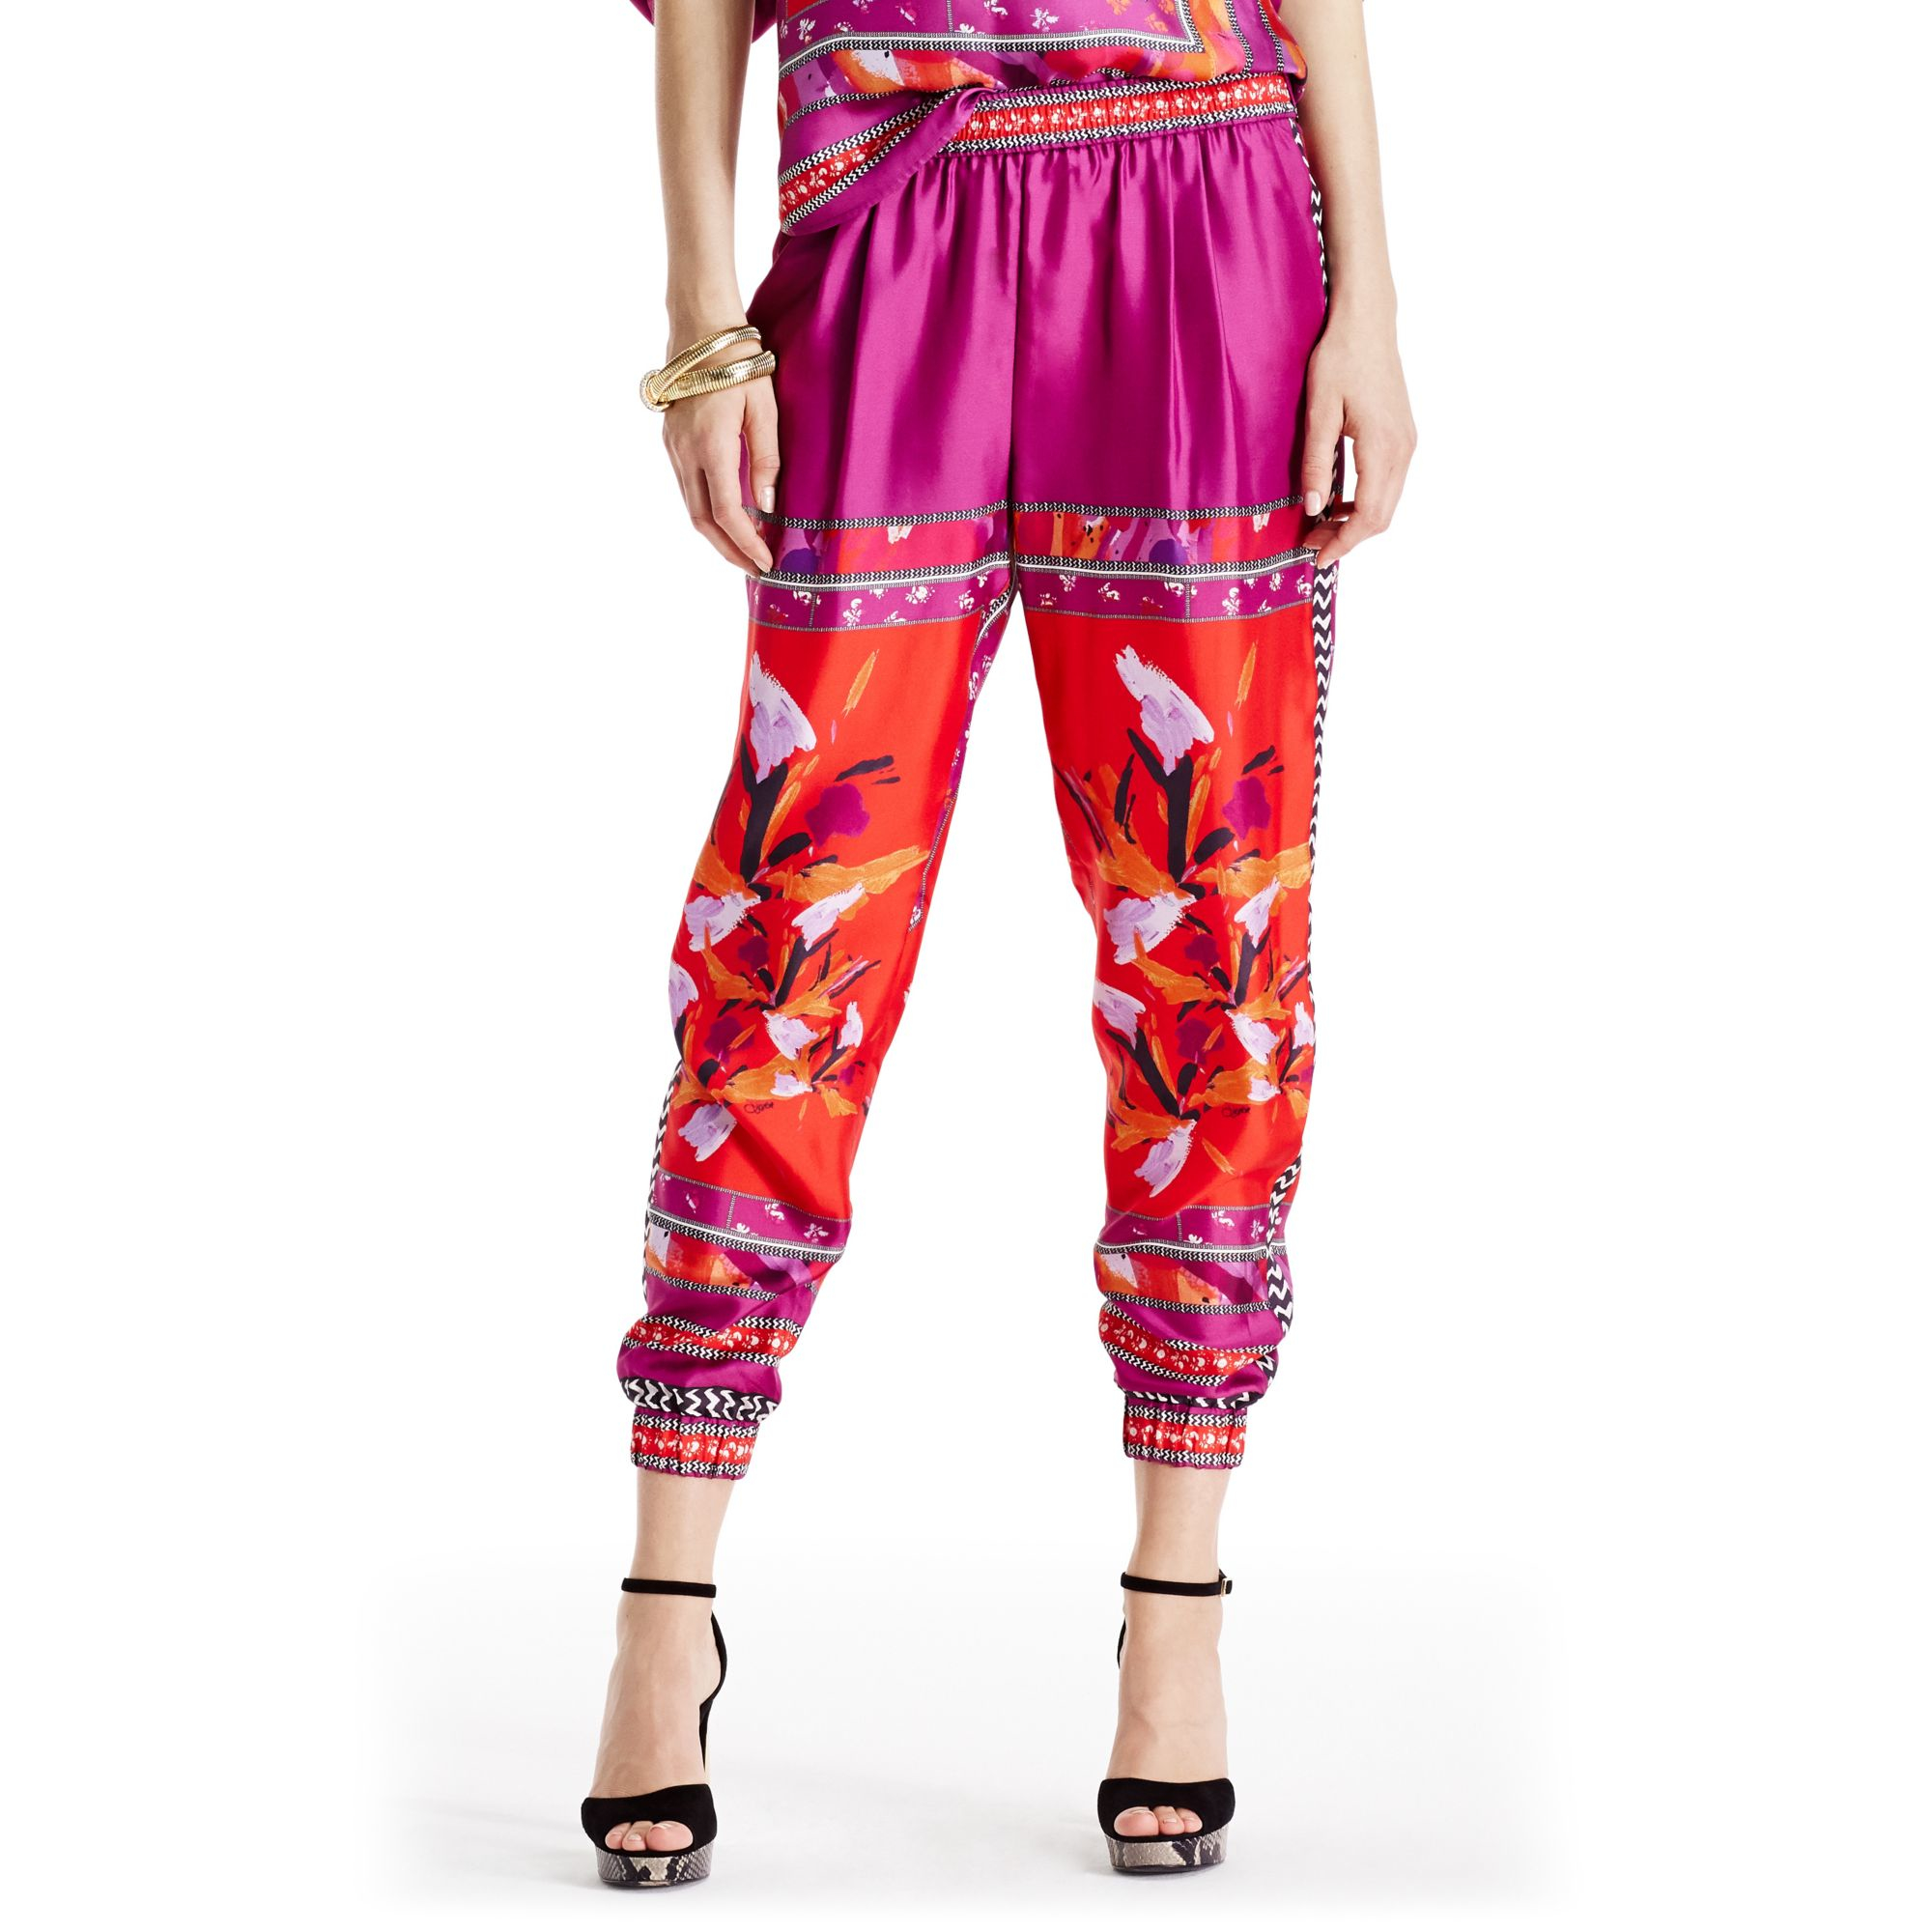 Outlet From China Discount Eastbay High-waisted silk-blend trousers Diane Von Fürstenberg yRpjv2GF